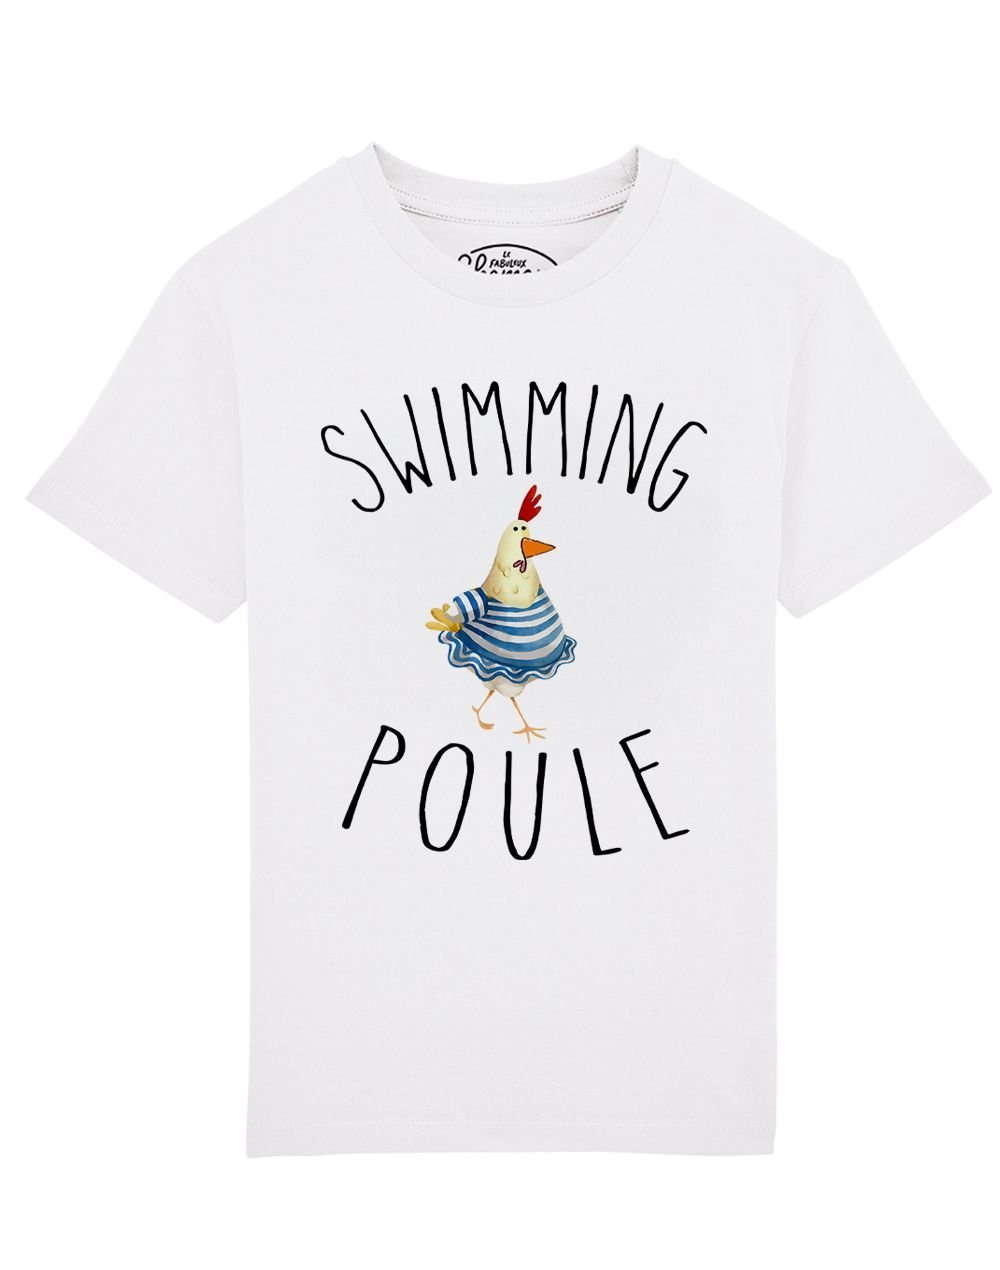 Tee shirt Swimming Poule